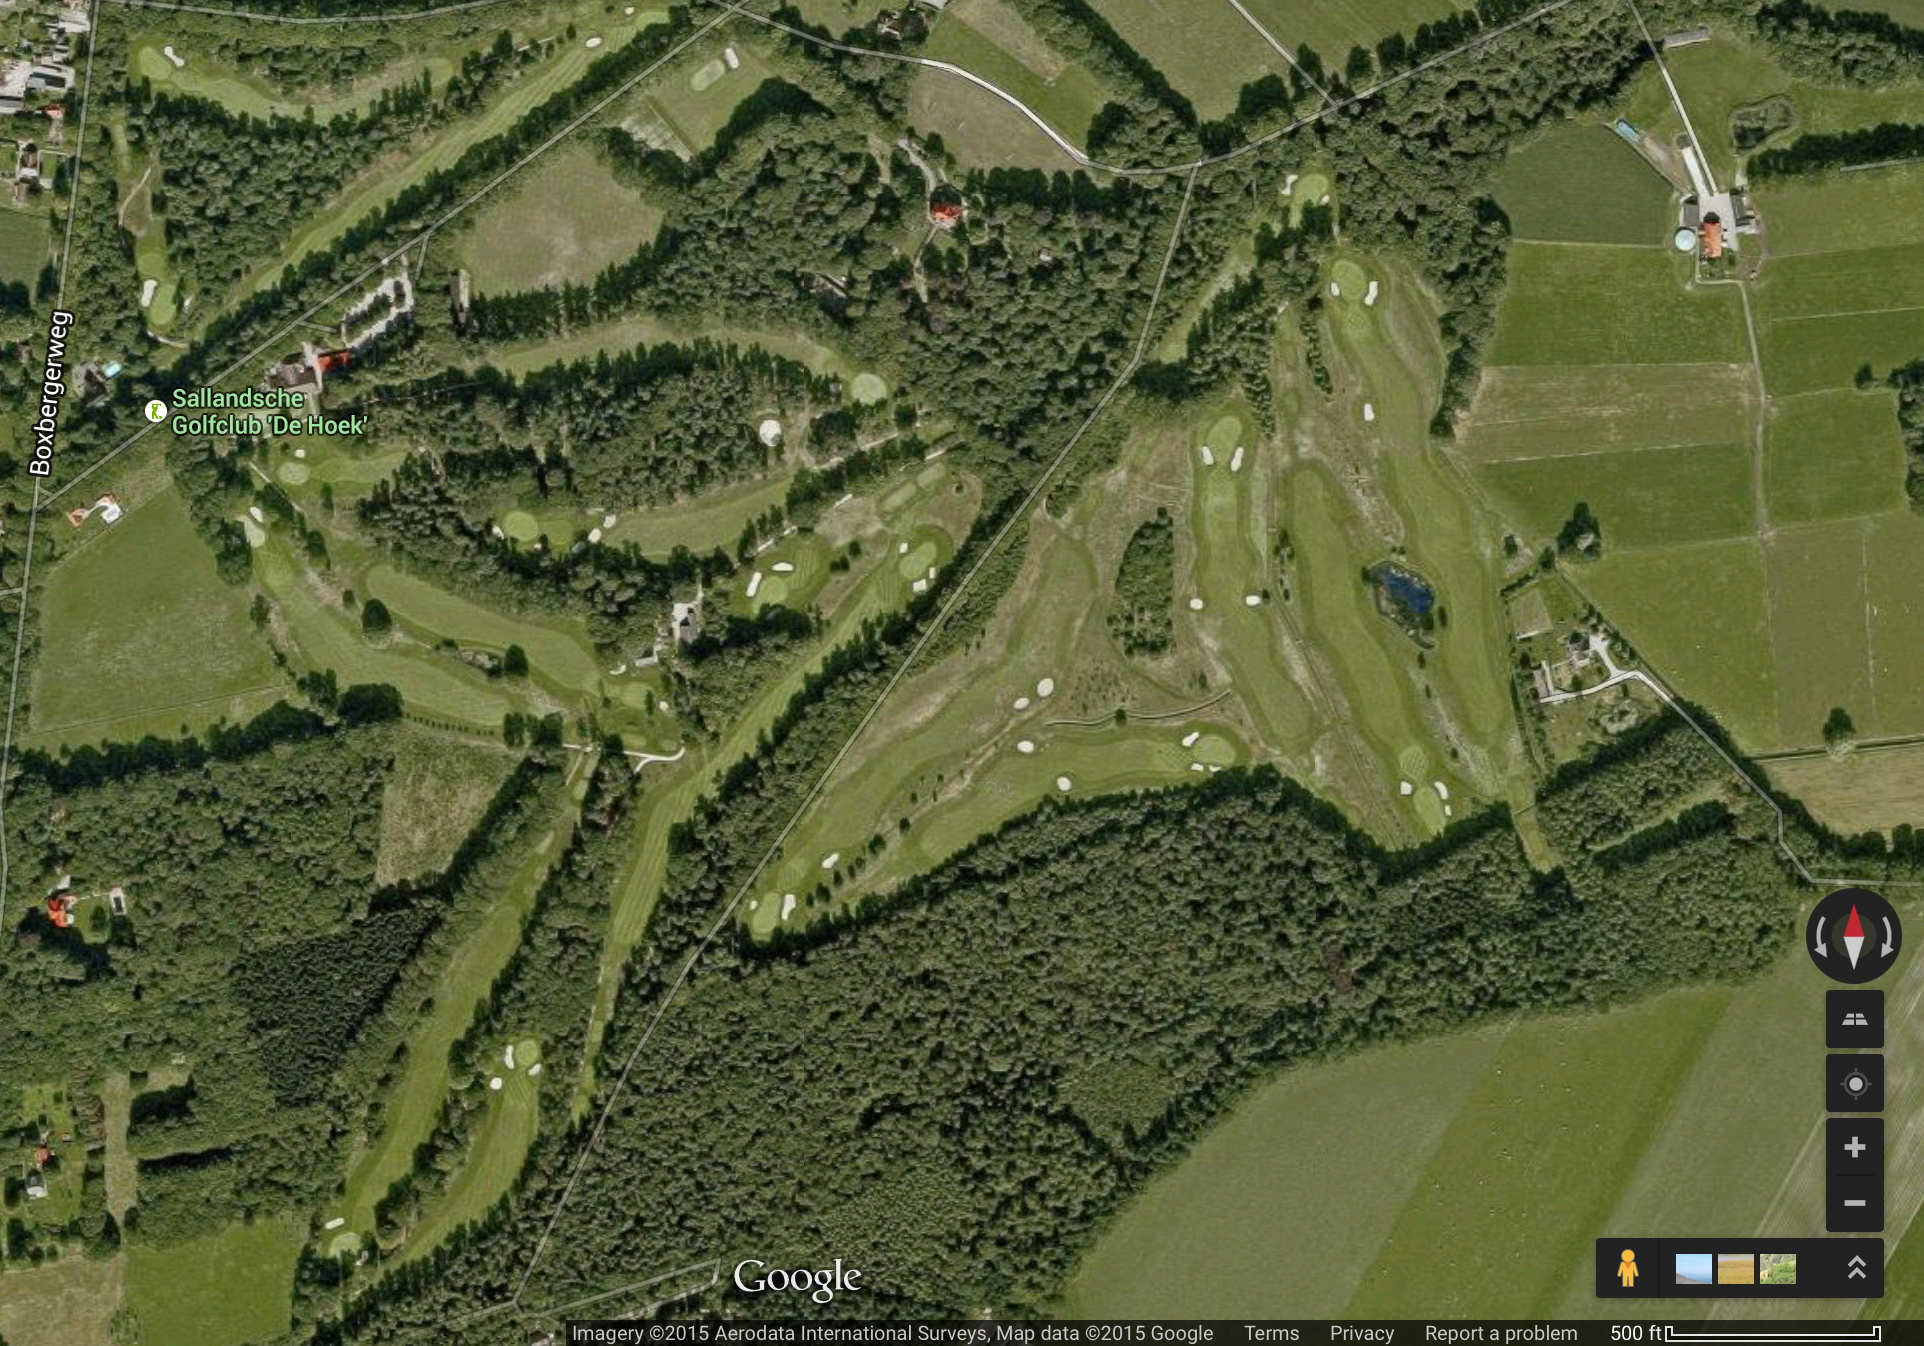 Screenshot of un-updated satellite view of Sallandsche and the old bunker scheme.